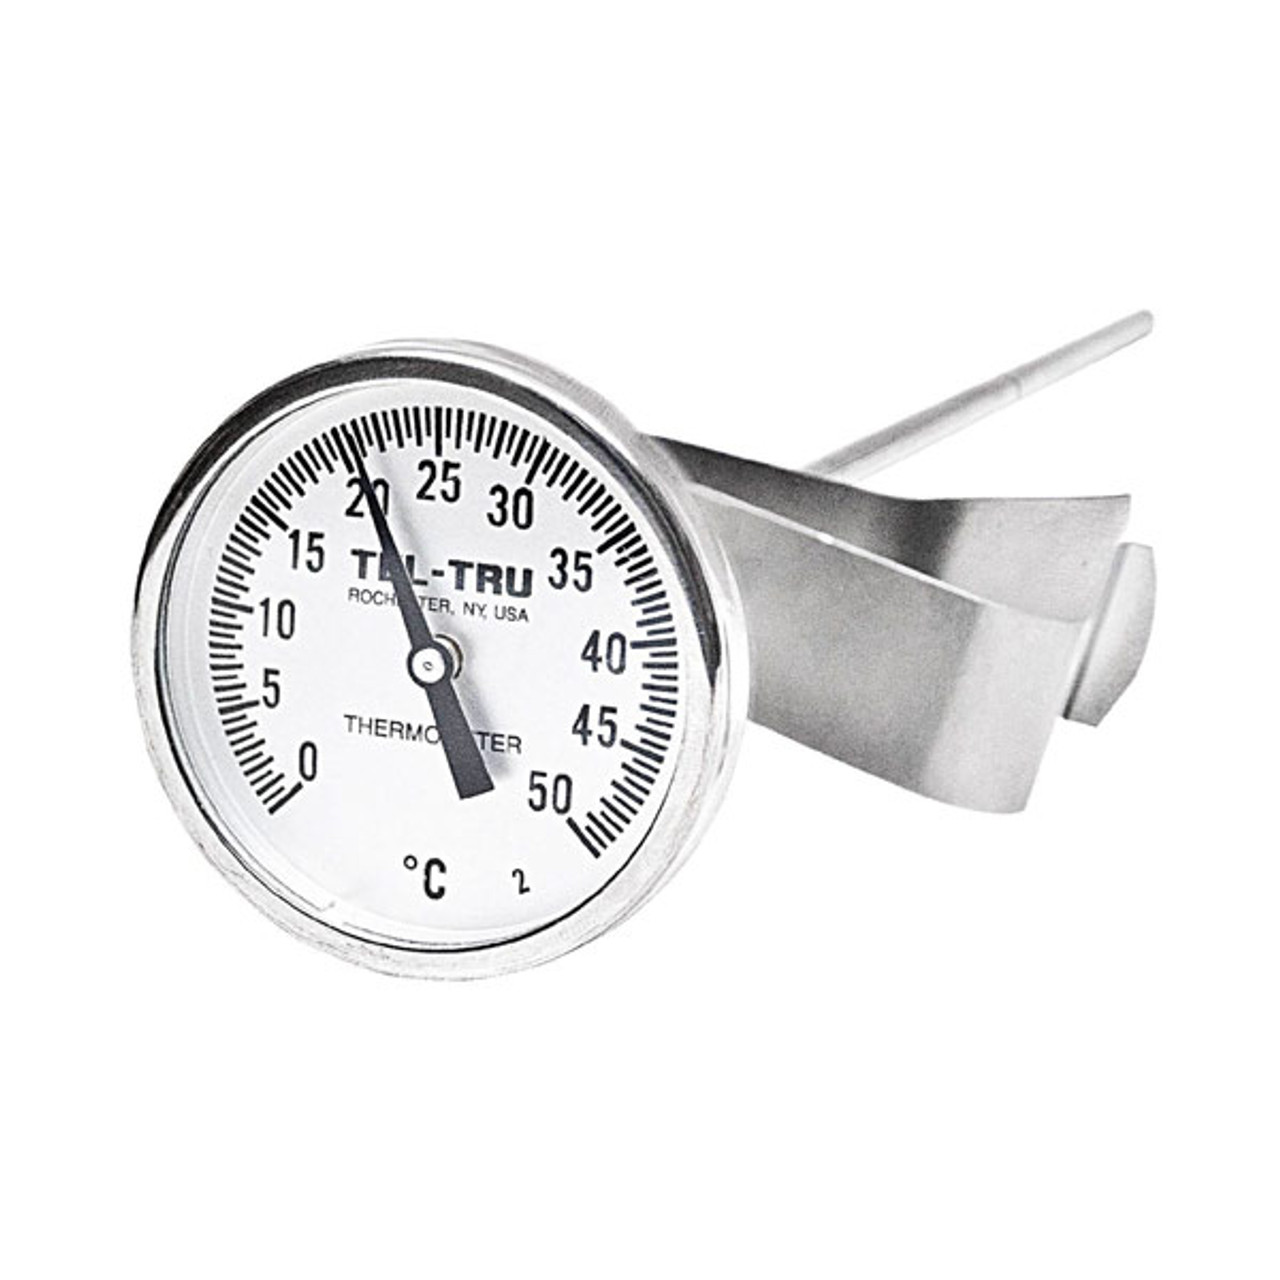 Dial Thermometer 0 To 50c 0 15 Stem 1 75 Dial Pocket Thermometers And Thermometers Certified Material Testing Products